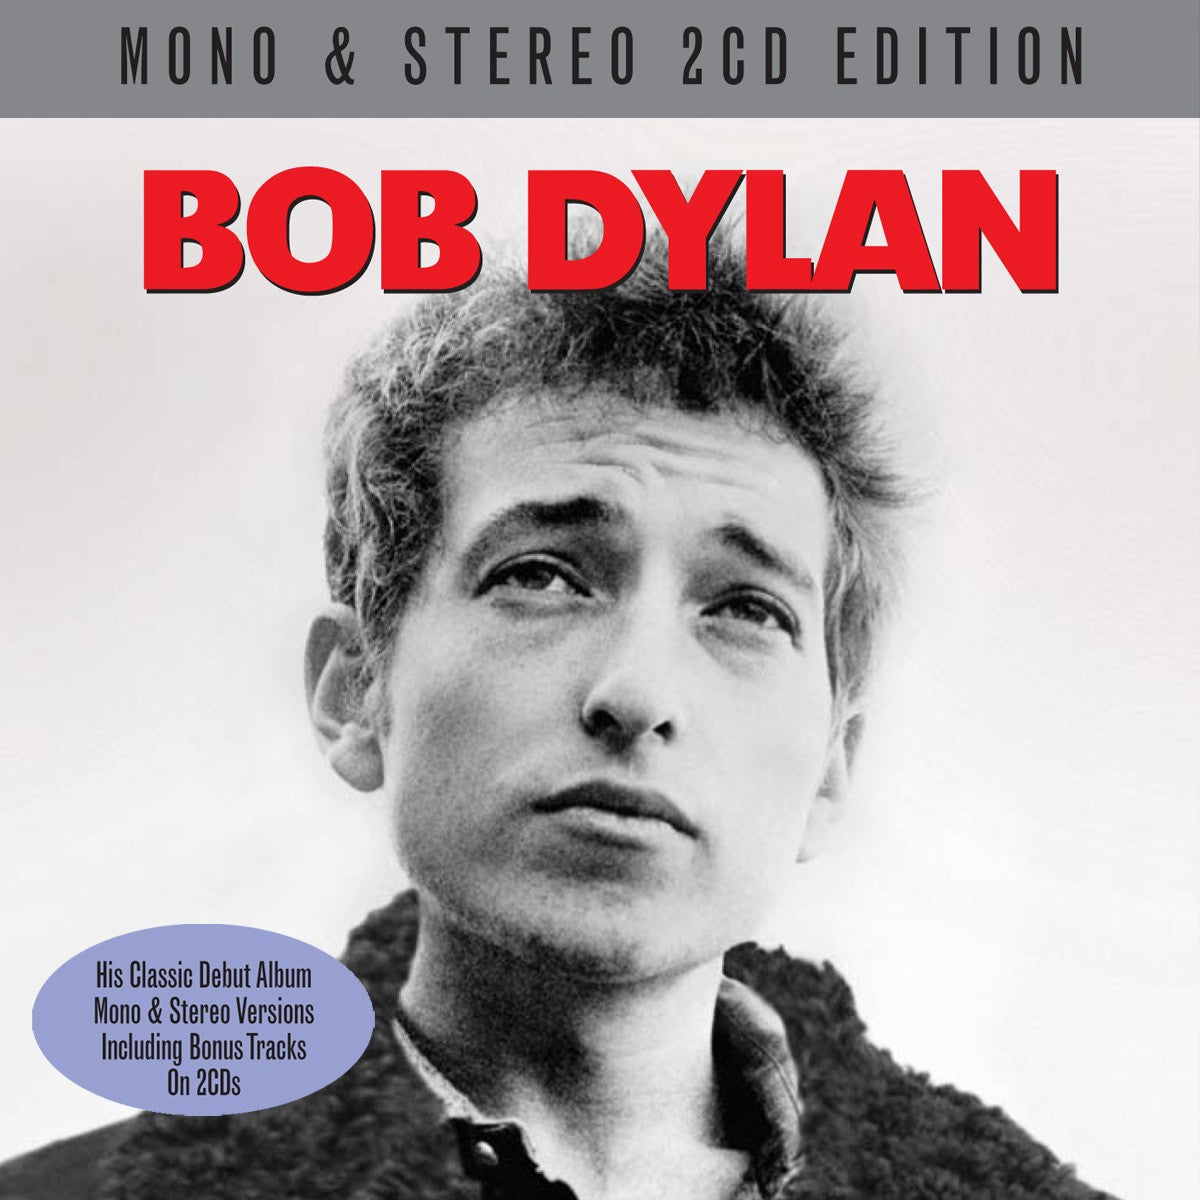 BOB DYLAN (DEBUT ALBUM): 2 CDS, MONO & STEREO VERSIONS